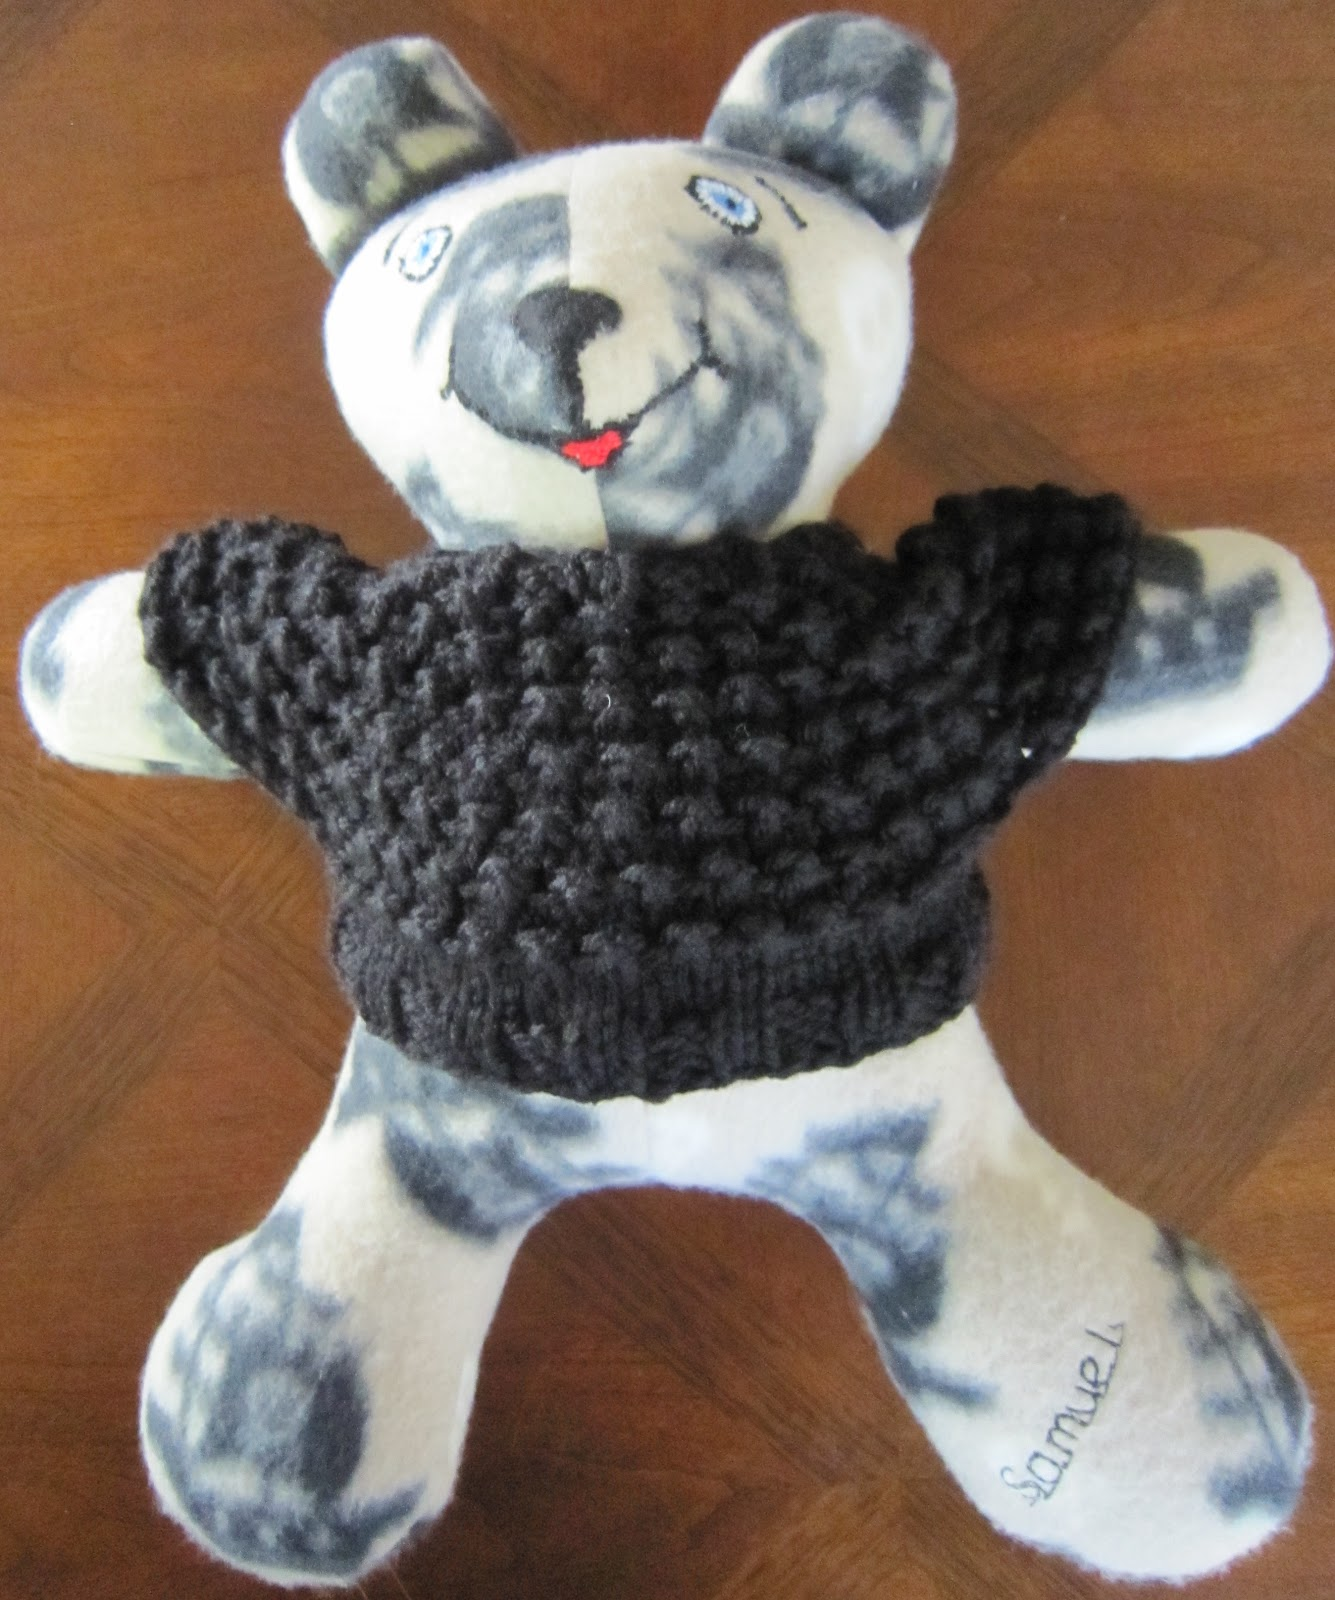 Jumper Knitting Pattern For A Teddy Bear : Sea Trail Grandmas: Large (16